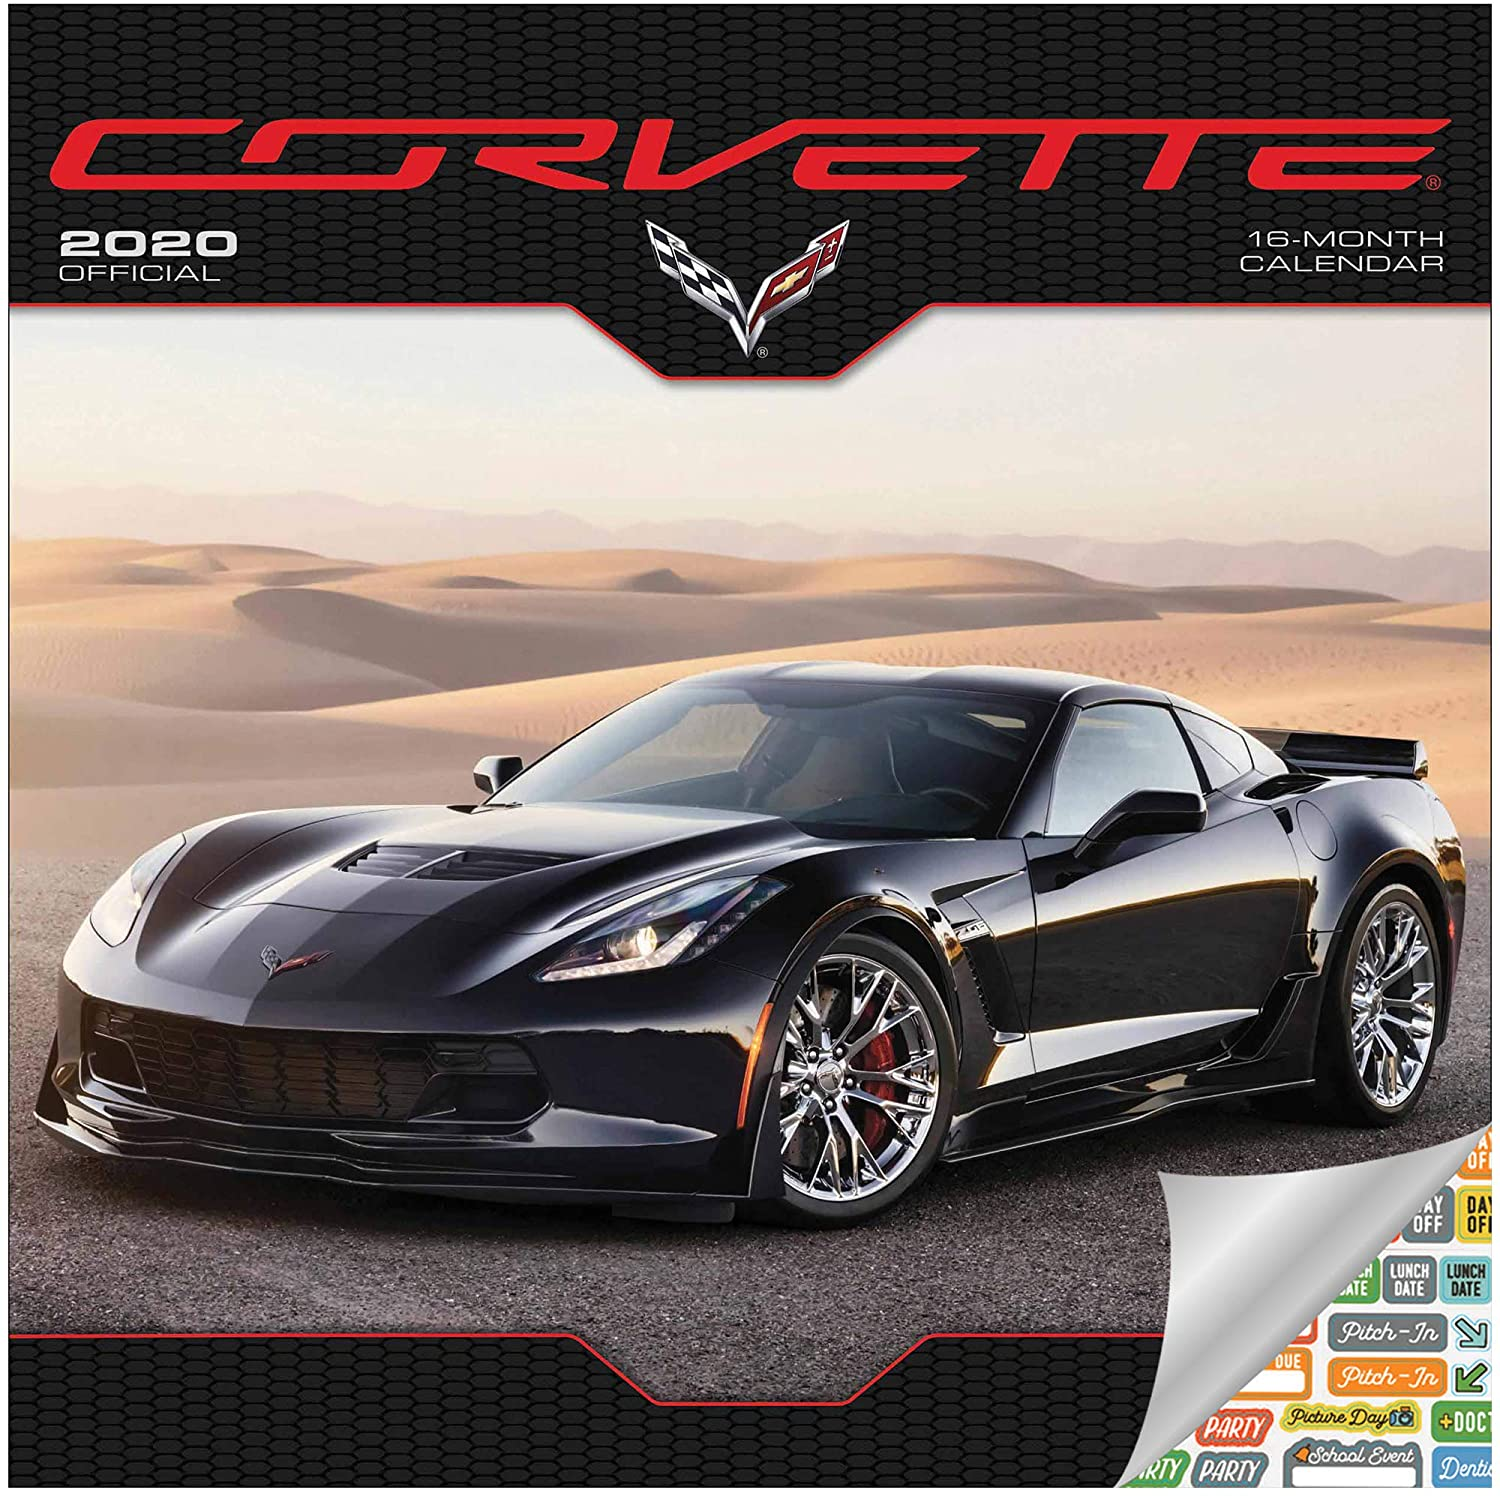 Corvette Calendar 2020 Set - Deluxe 2020 Corvette Wall Calendar with Over 100 Calendar Stickers (Corvette Gifts, Office Supplies)